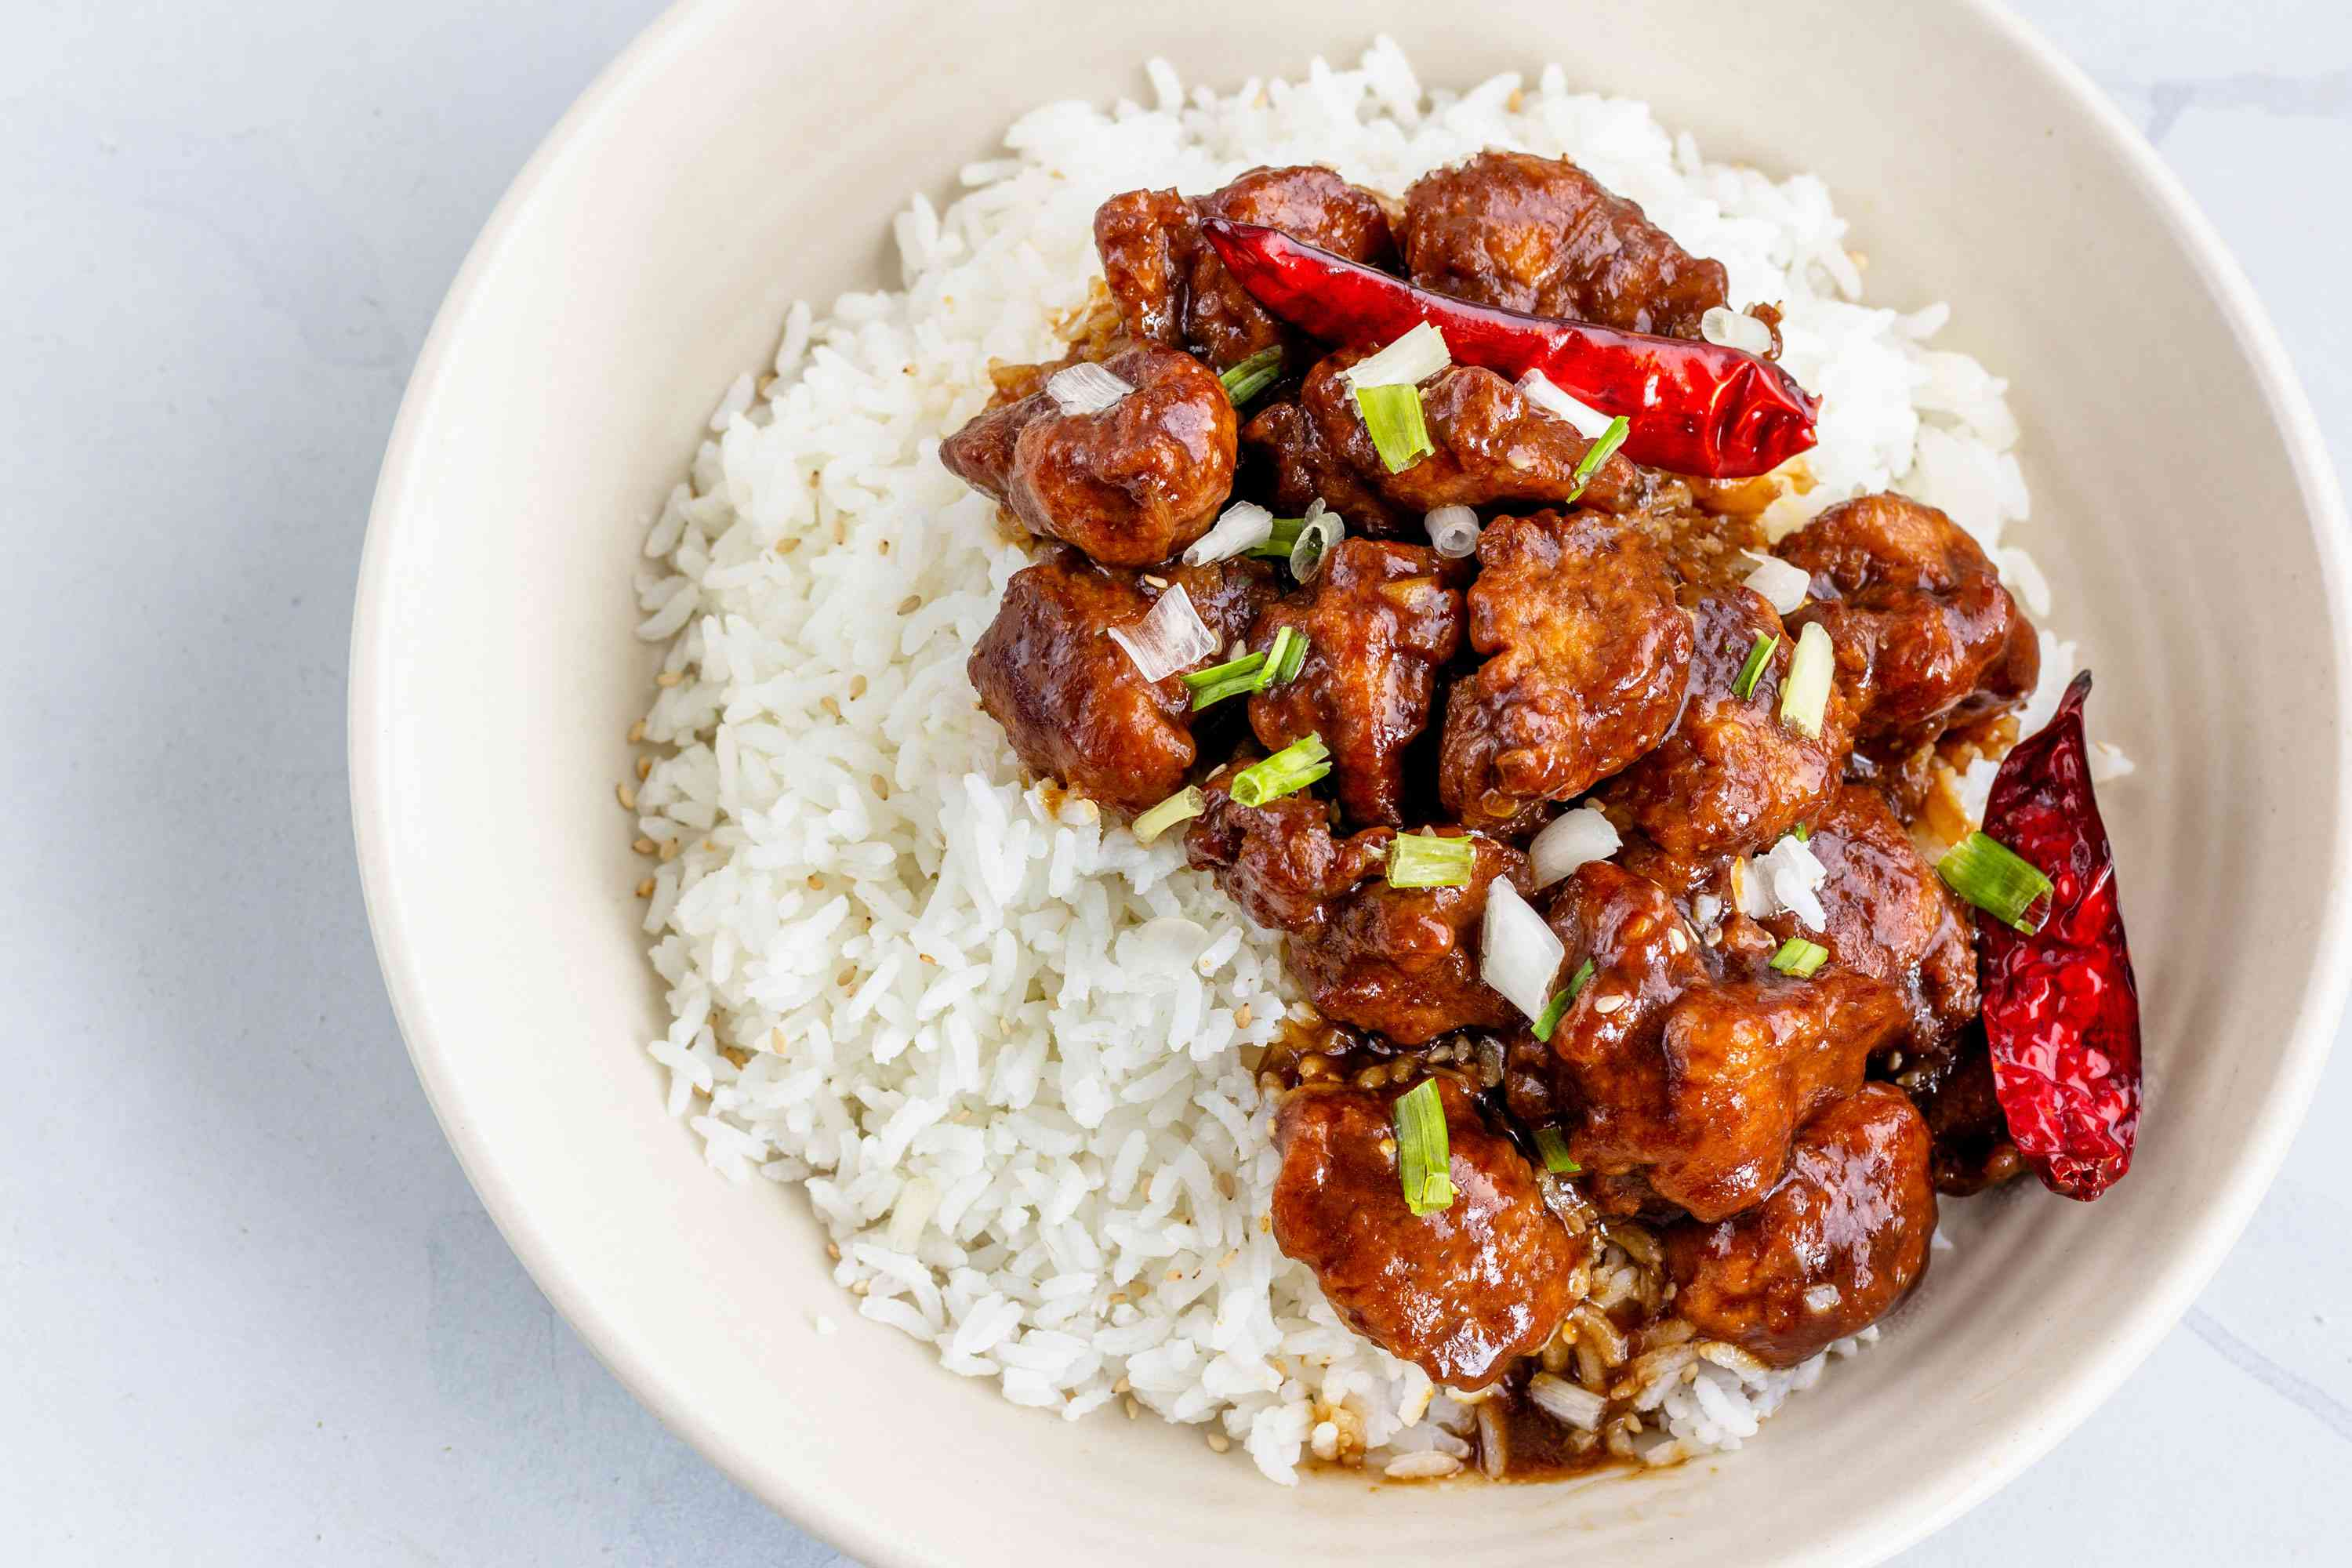 A bowl of General Tso's chicken served over rice